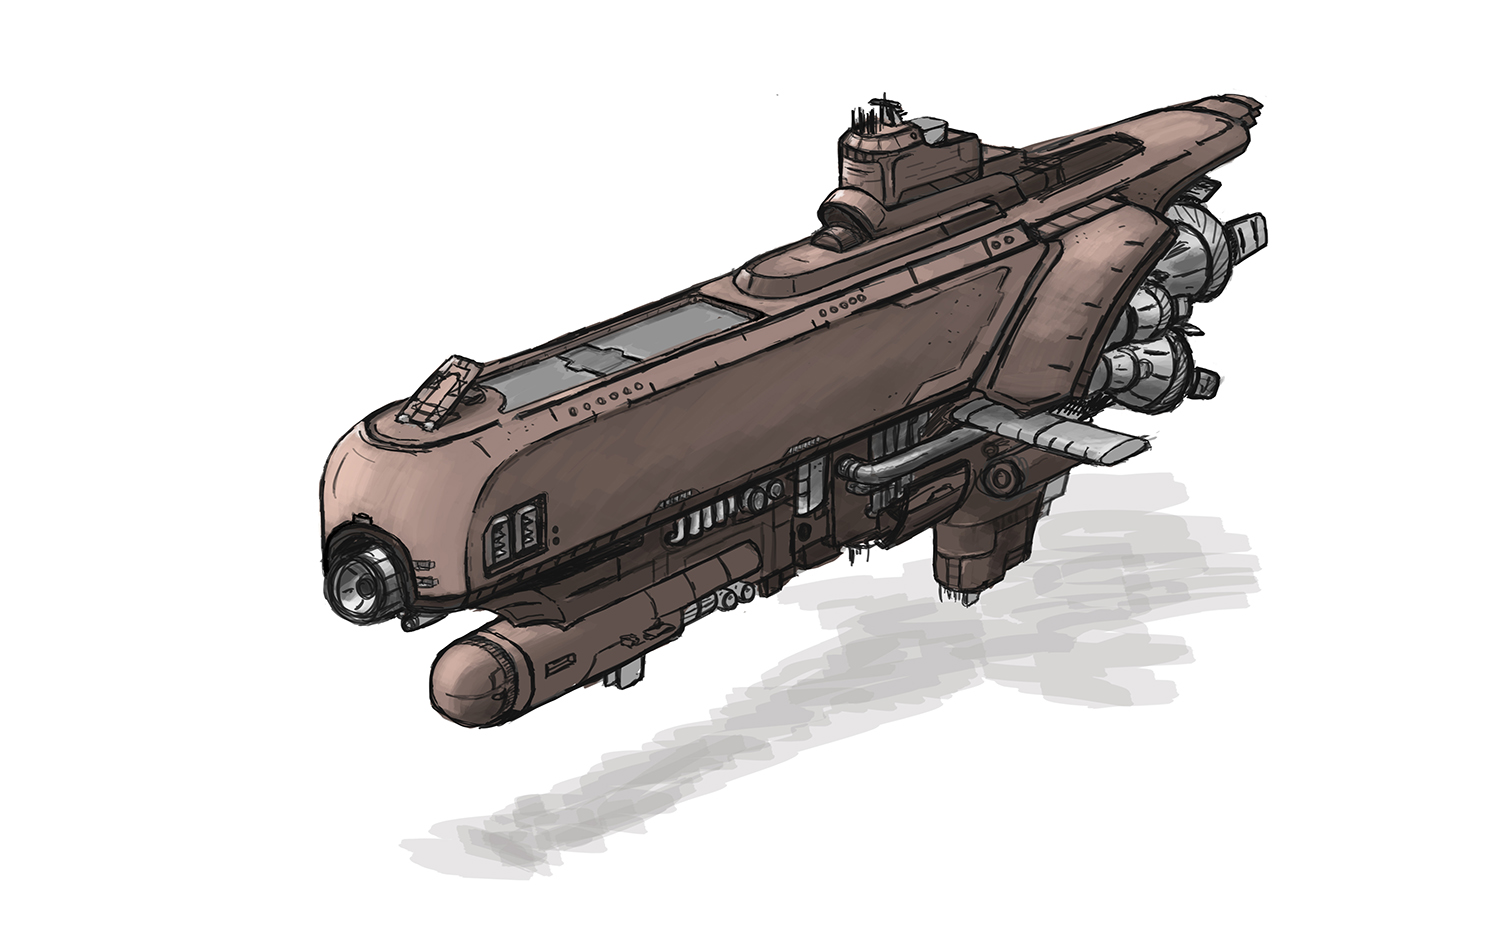 Diesel Space - Destroyer concept by Skaiway